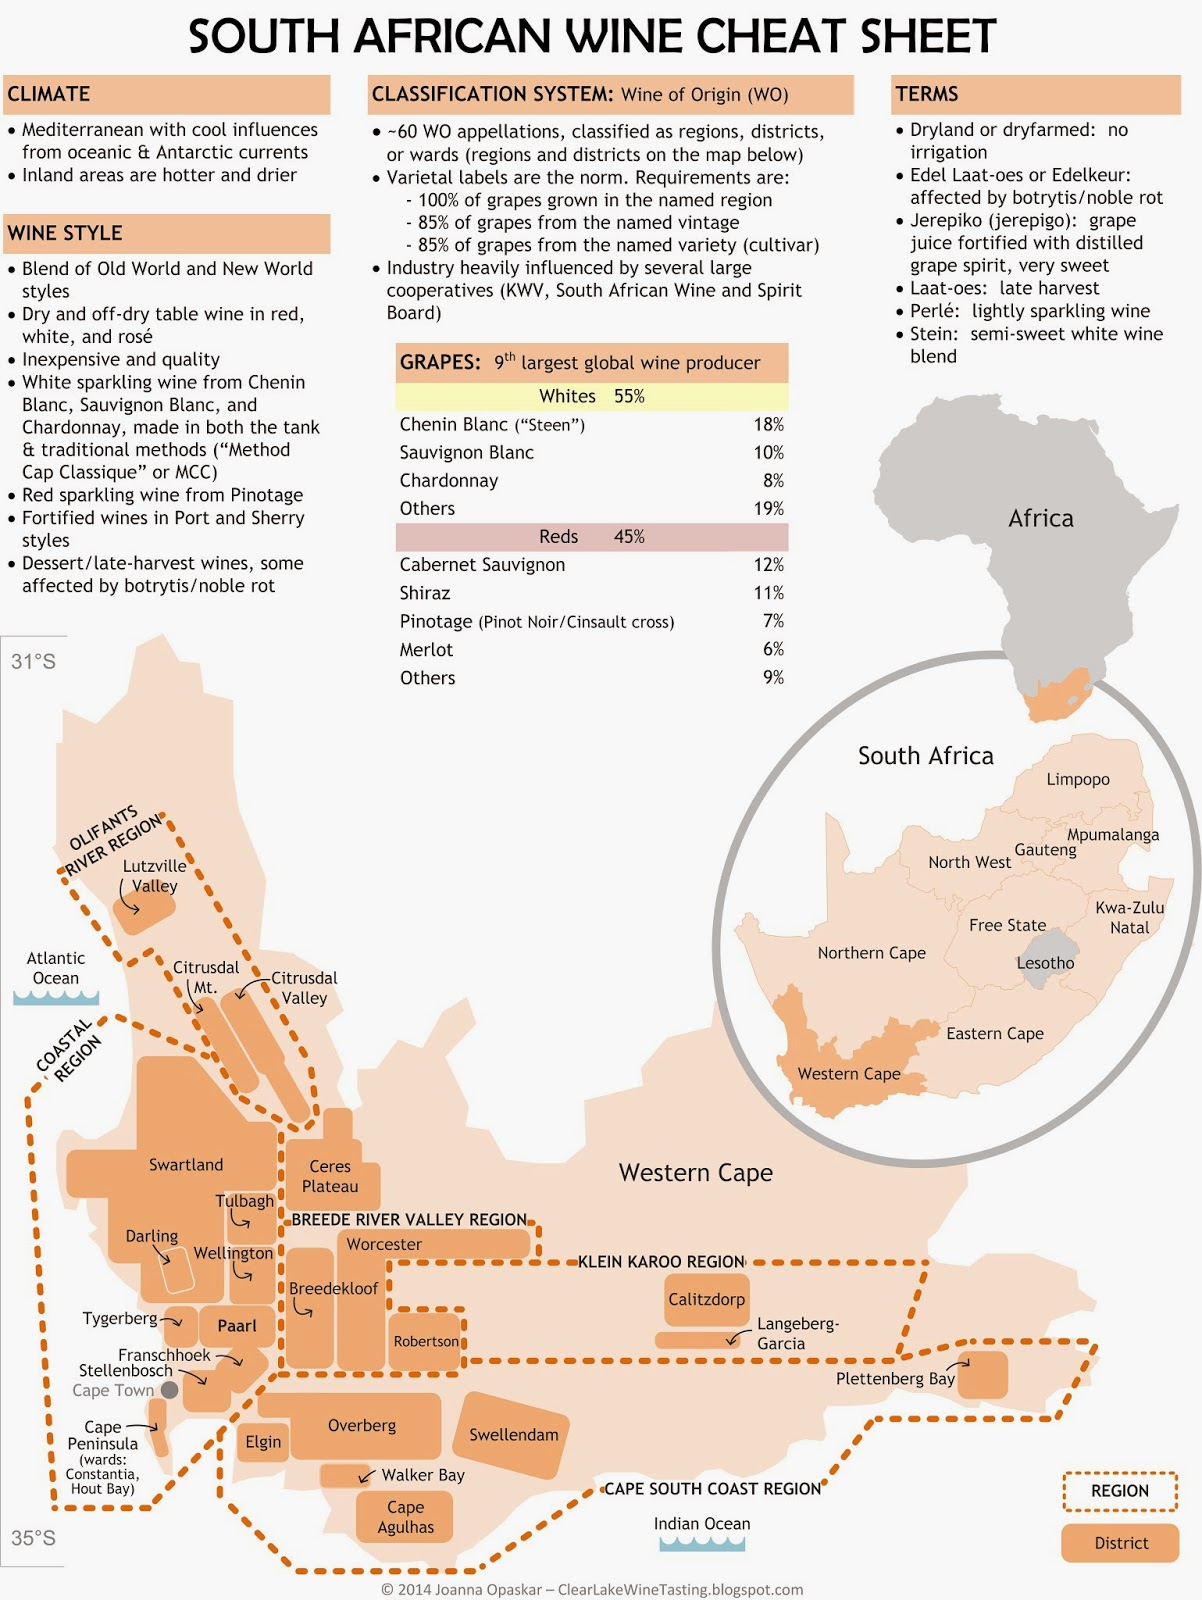 Clear Lake Wine Tasting: Wine Infographic: South African Wine Cheat